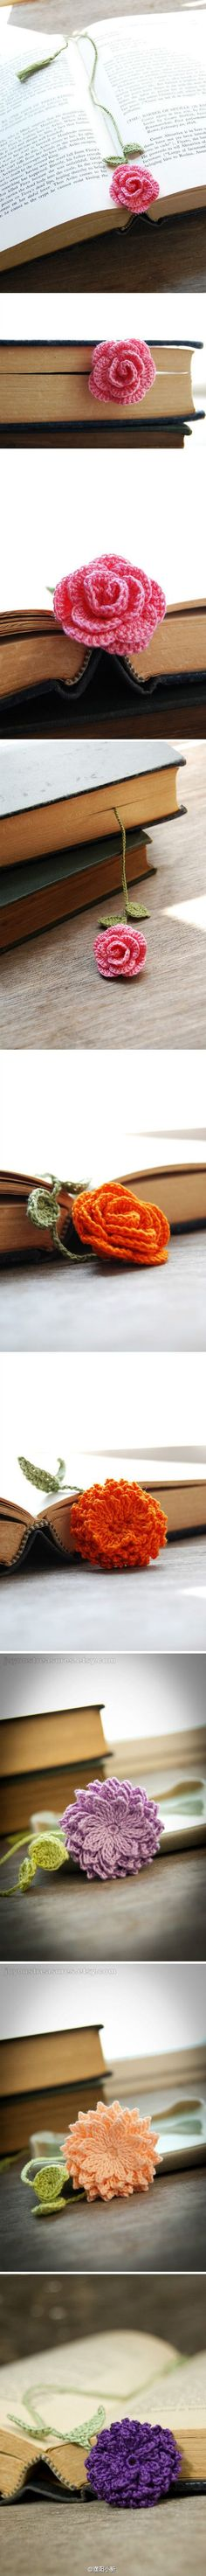 Pretty bookmarks - crochet flowers - i'd substitute for felt or fabric & string & a leaf charm